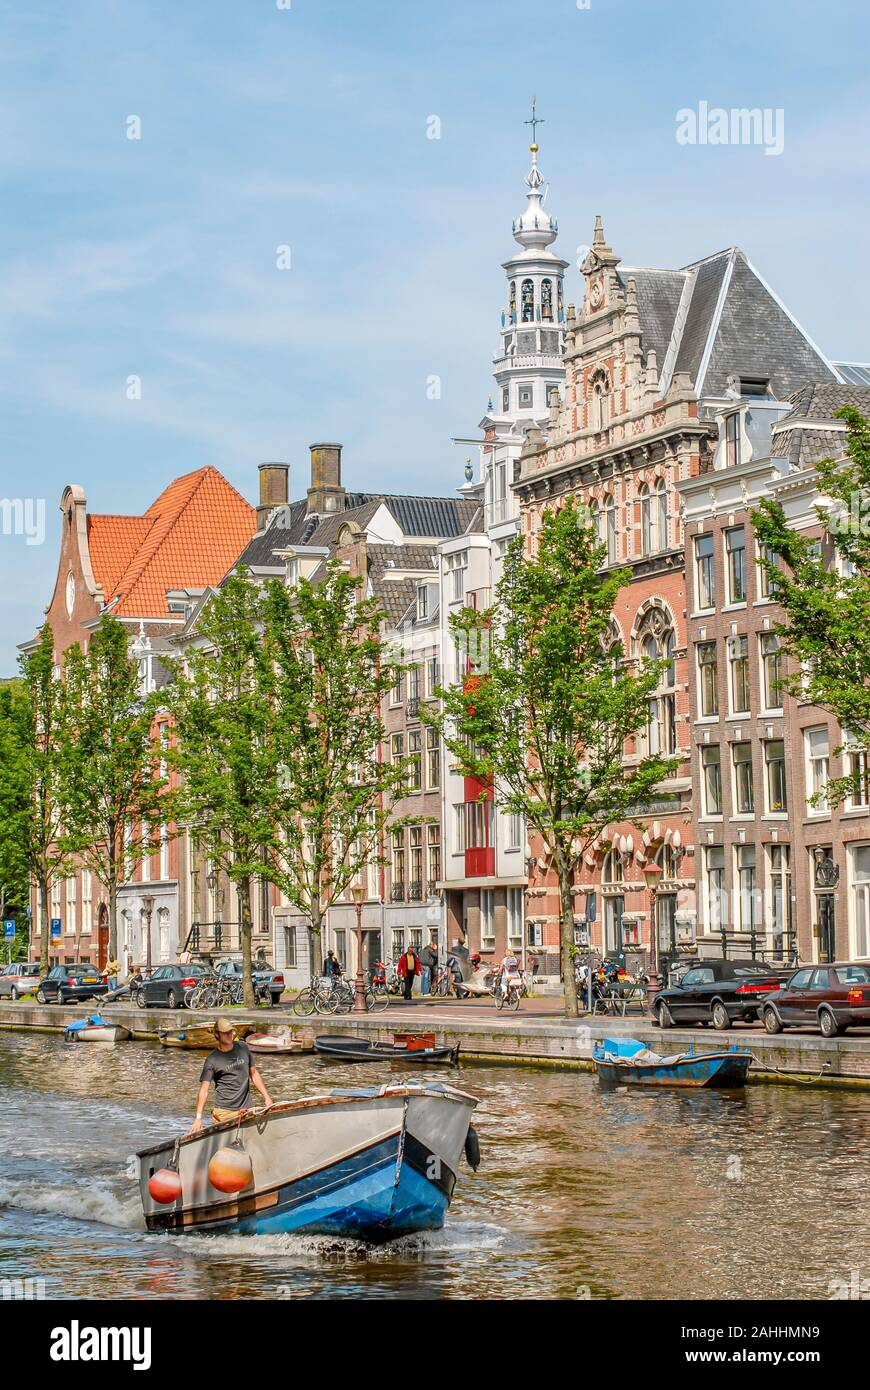 Small Boat running through a Amsterdam Water Channel, Netherlande Stock Photo